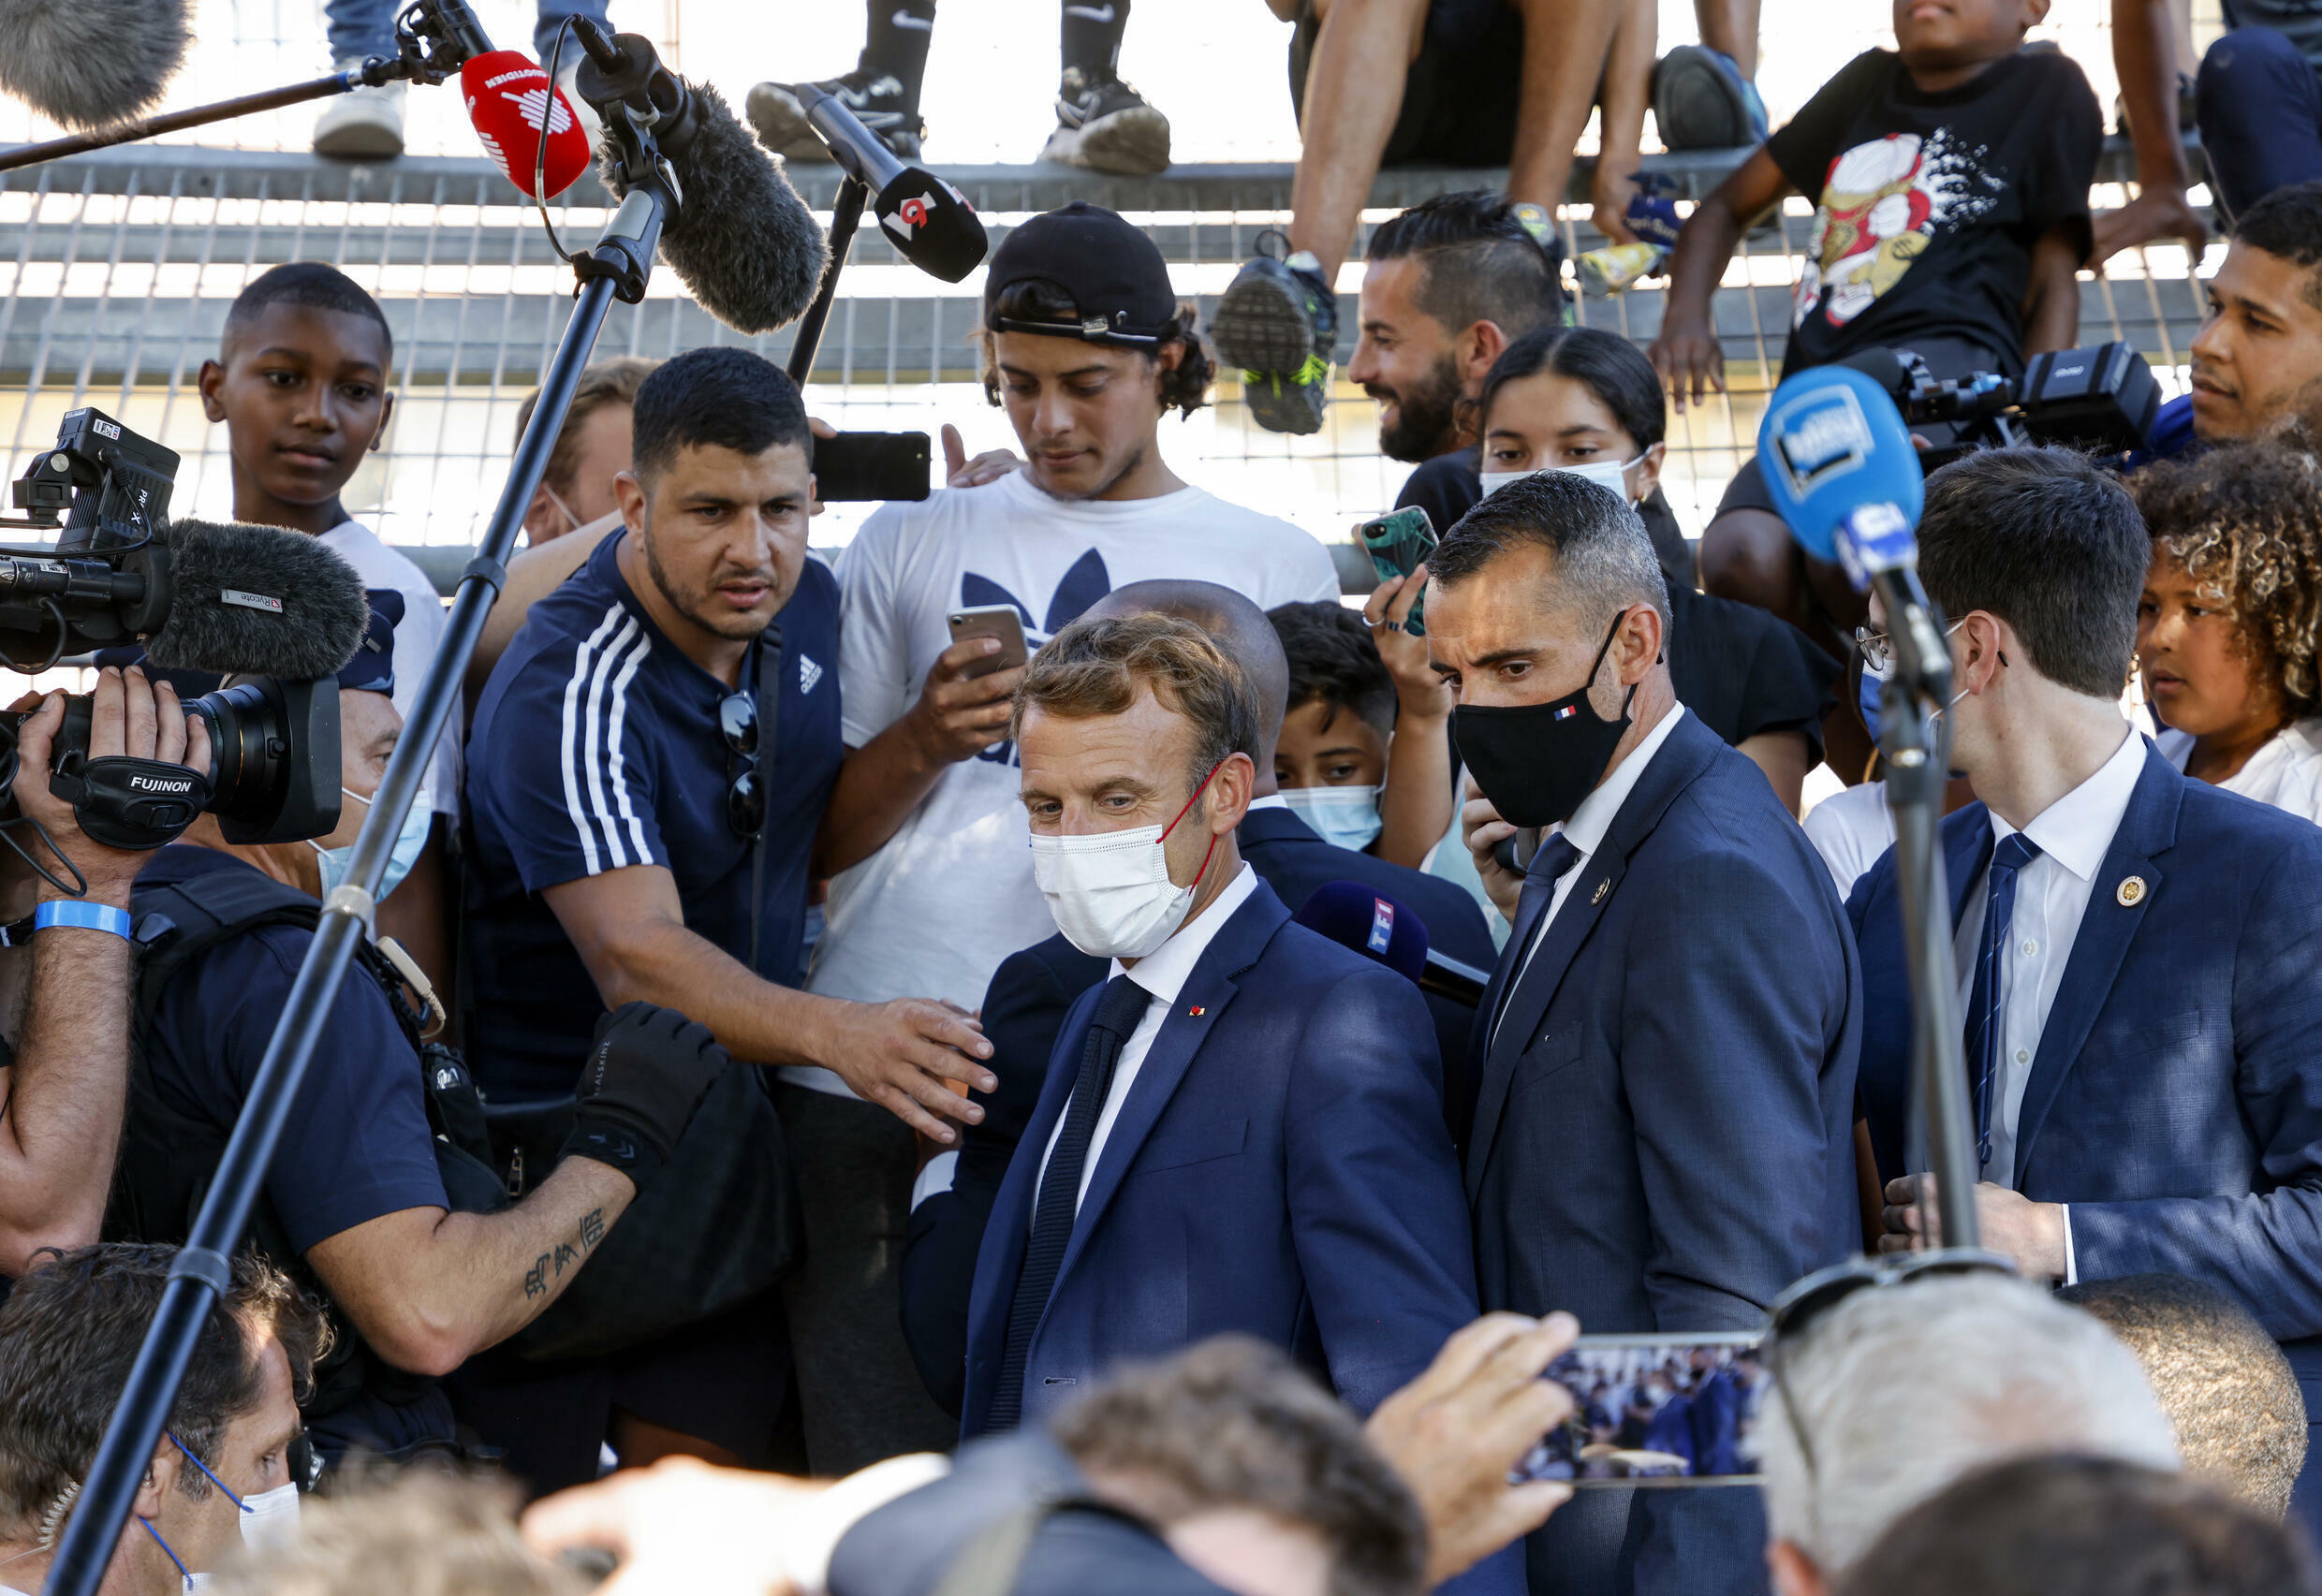 Macron met residents of the rundown district of Bassens on the first day of a three-day visit to Marseille